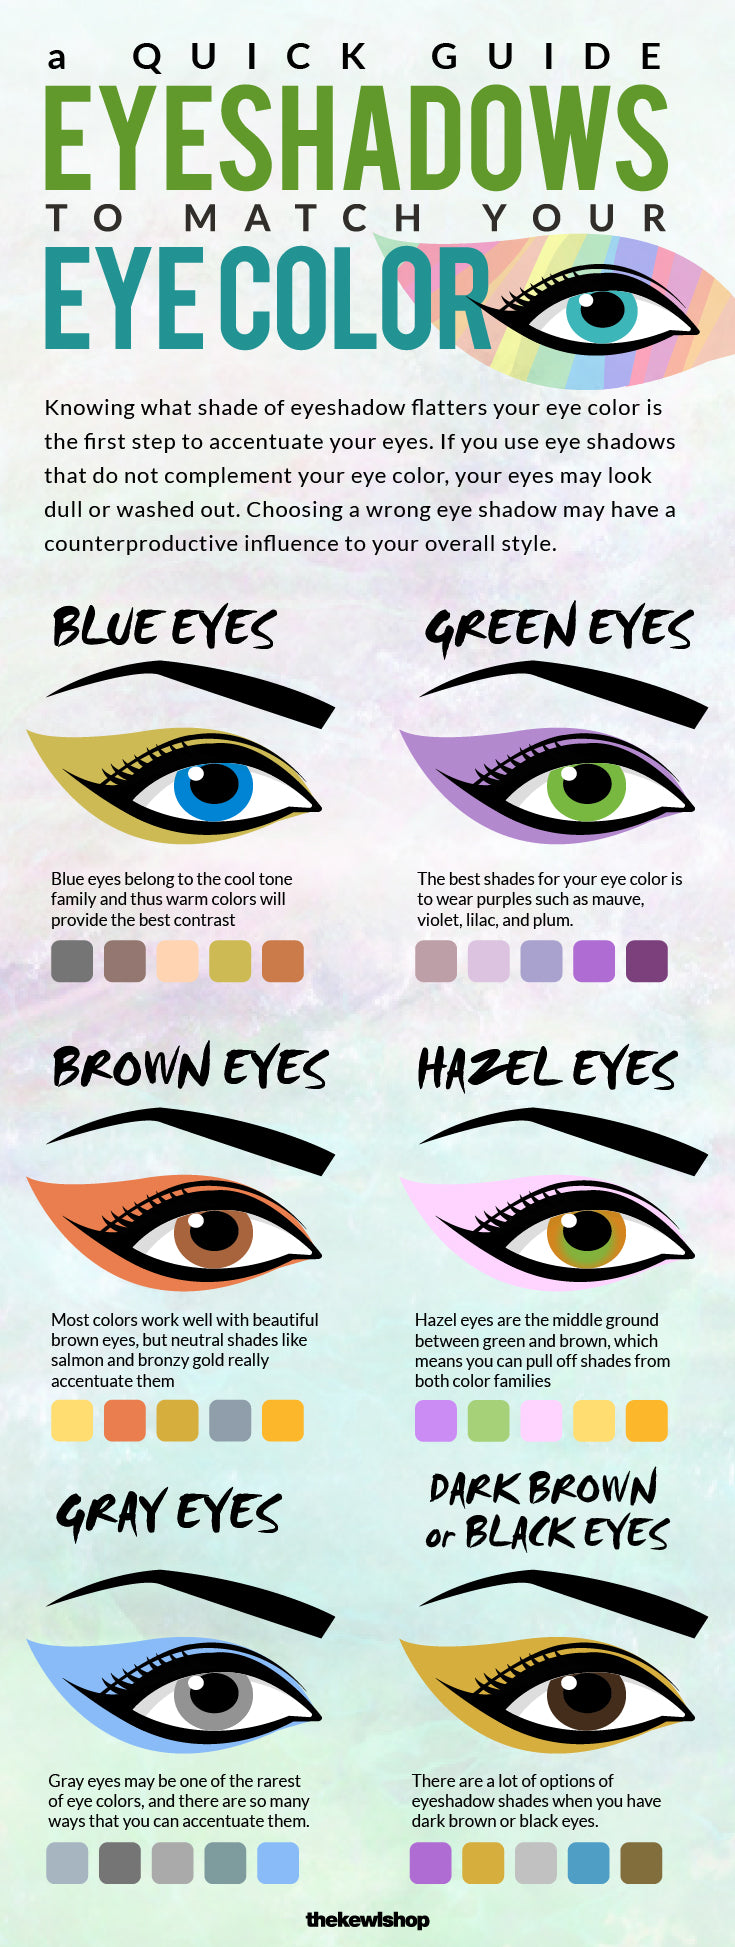 best eyeshadows to match your eye color | the kewl shop